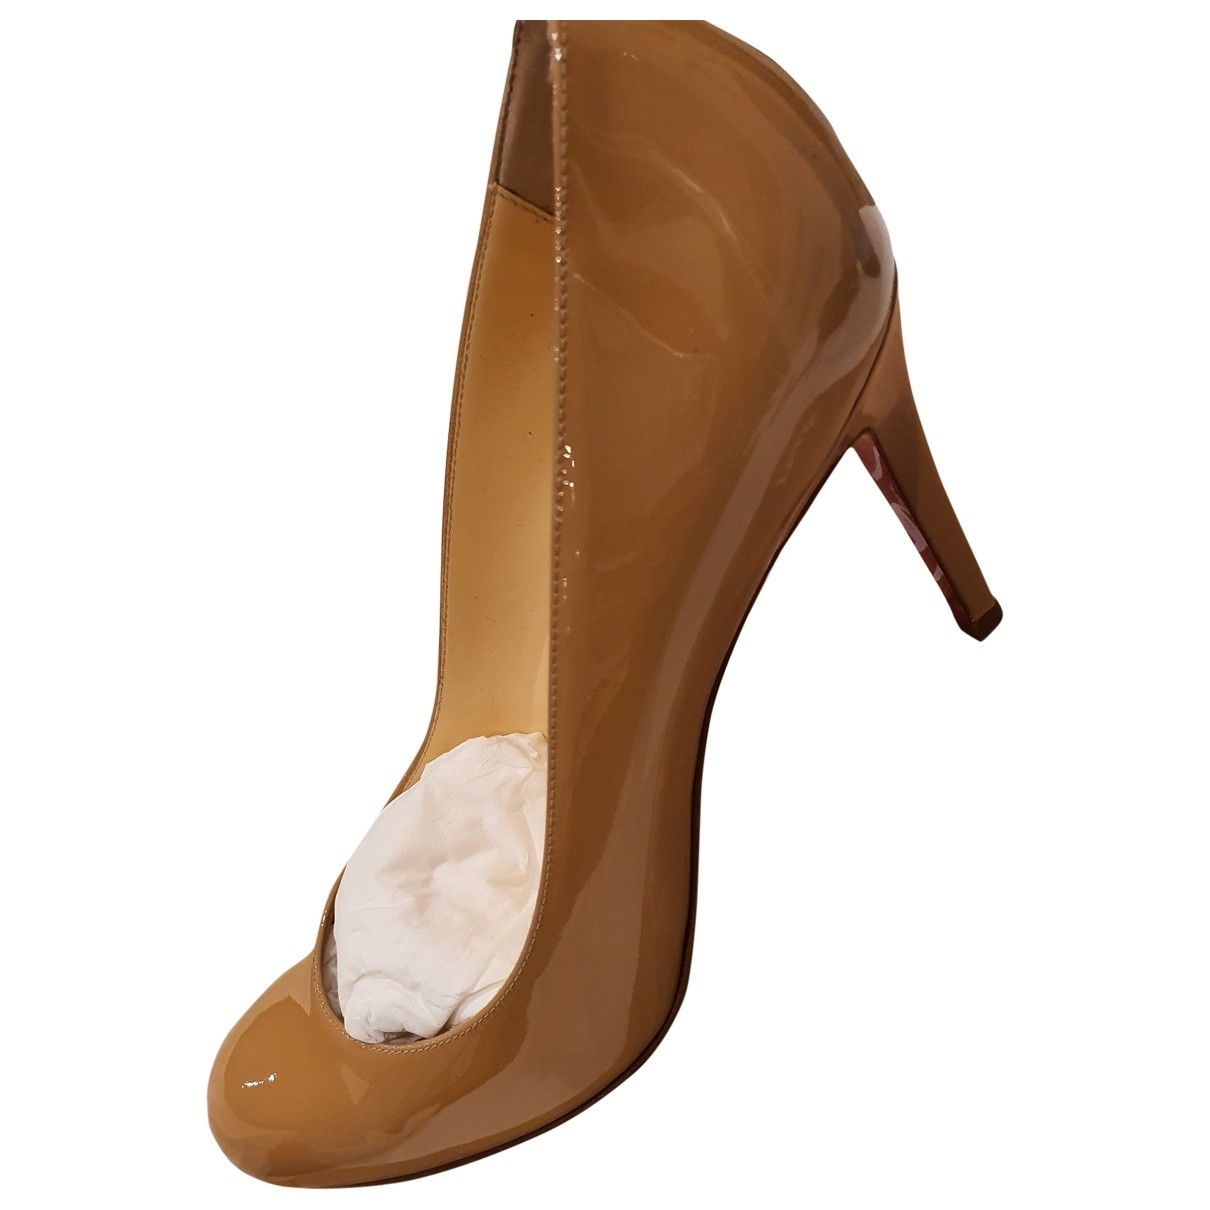 Christian Louboutin Simple pump Beige Patent leather Heels for Women 38 EU